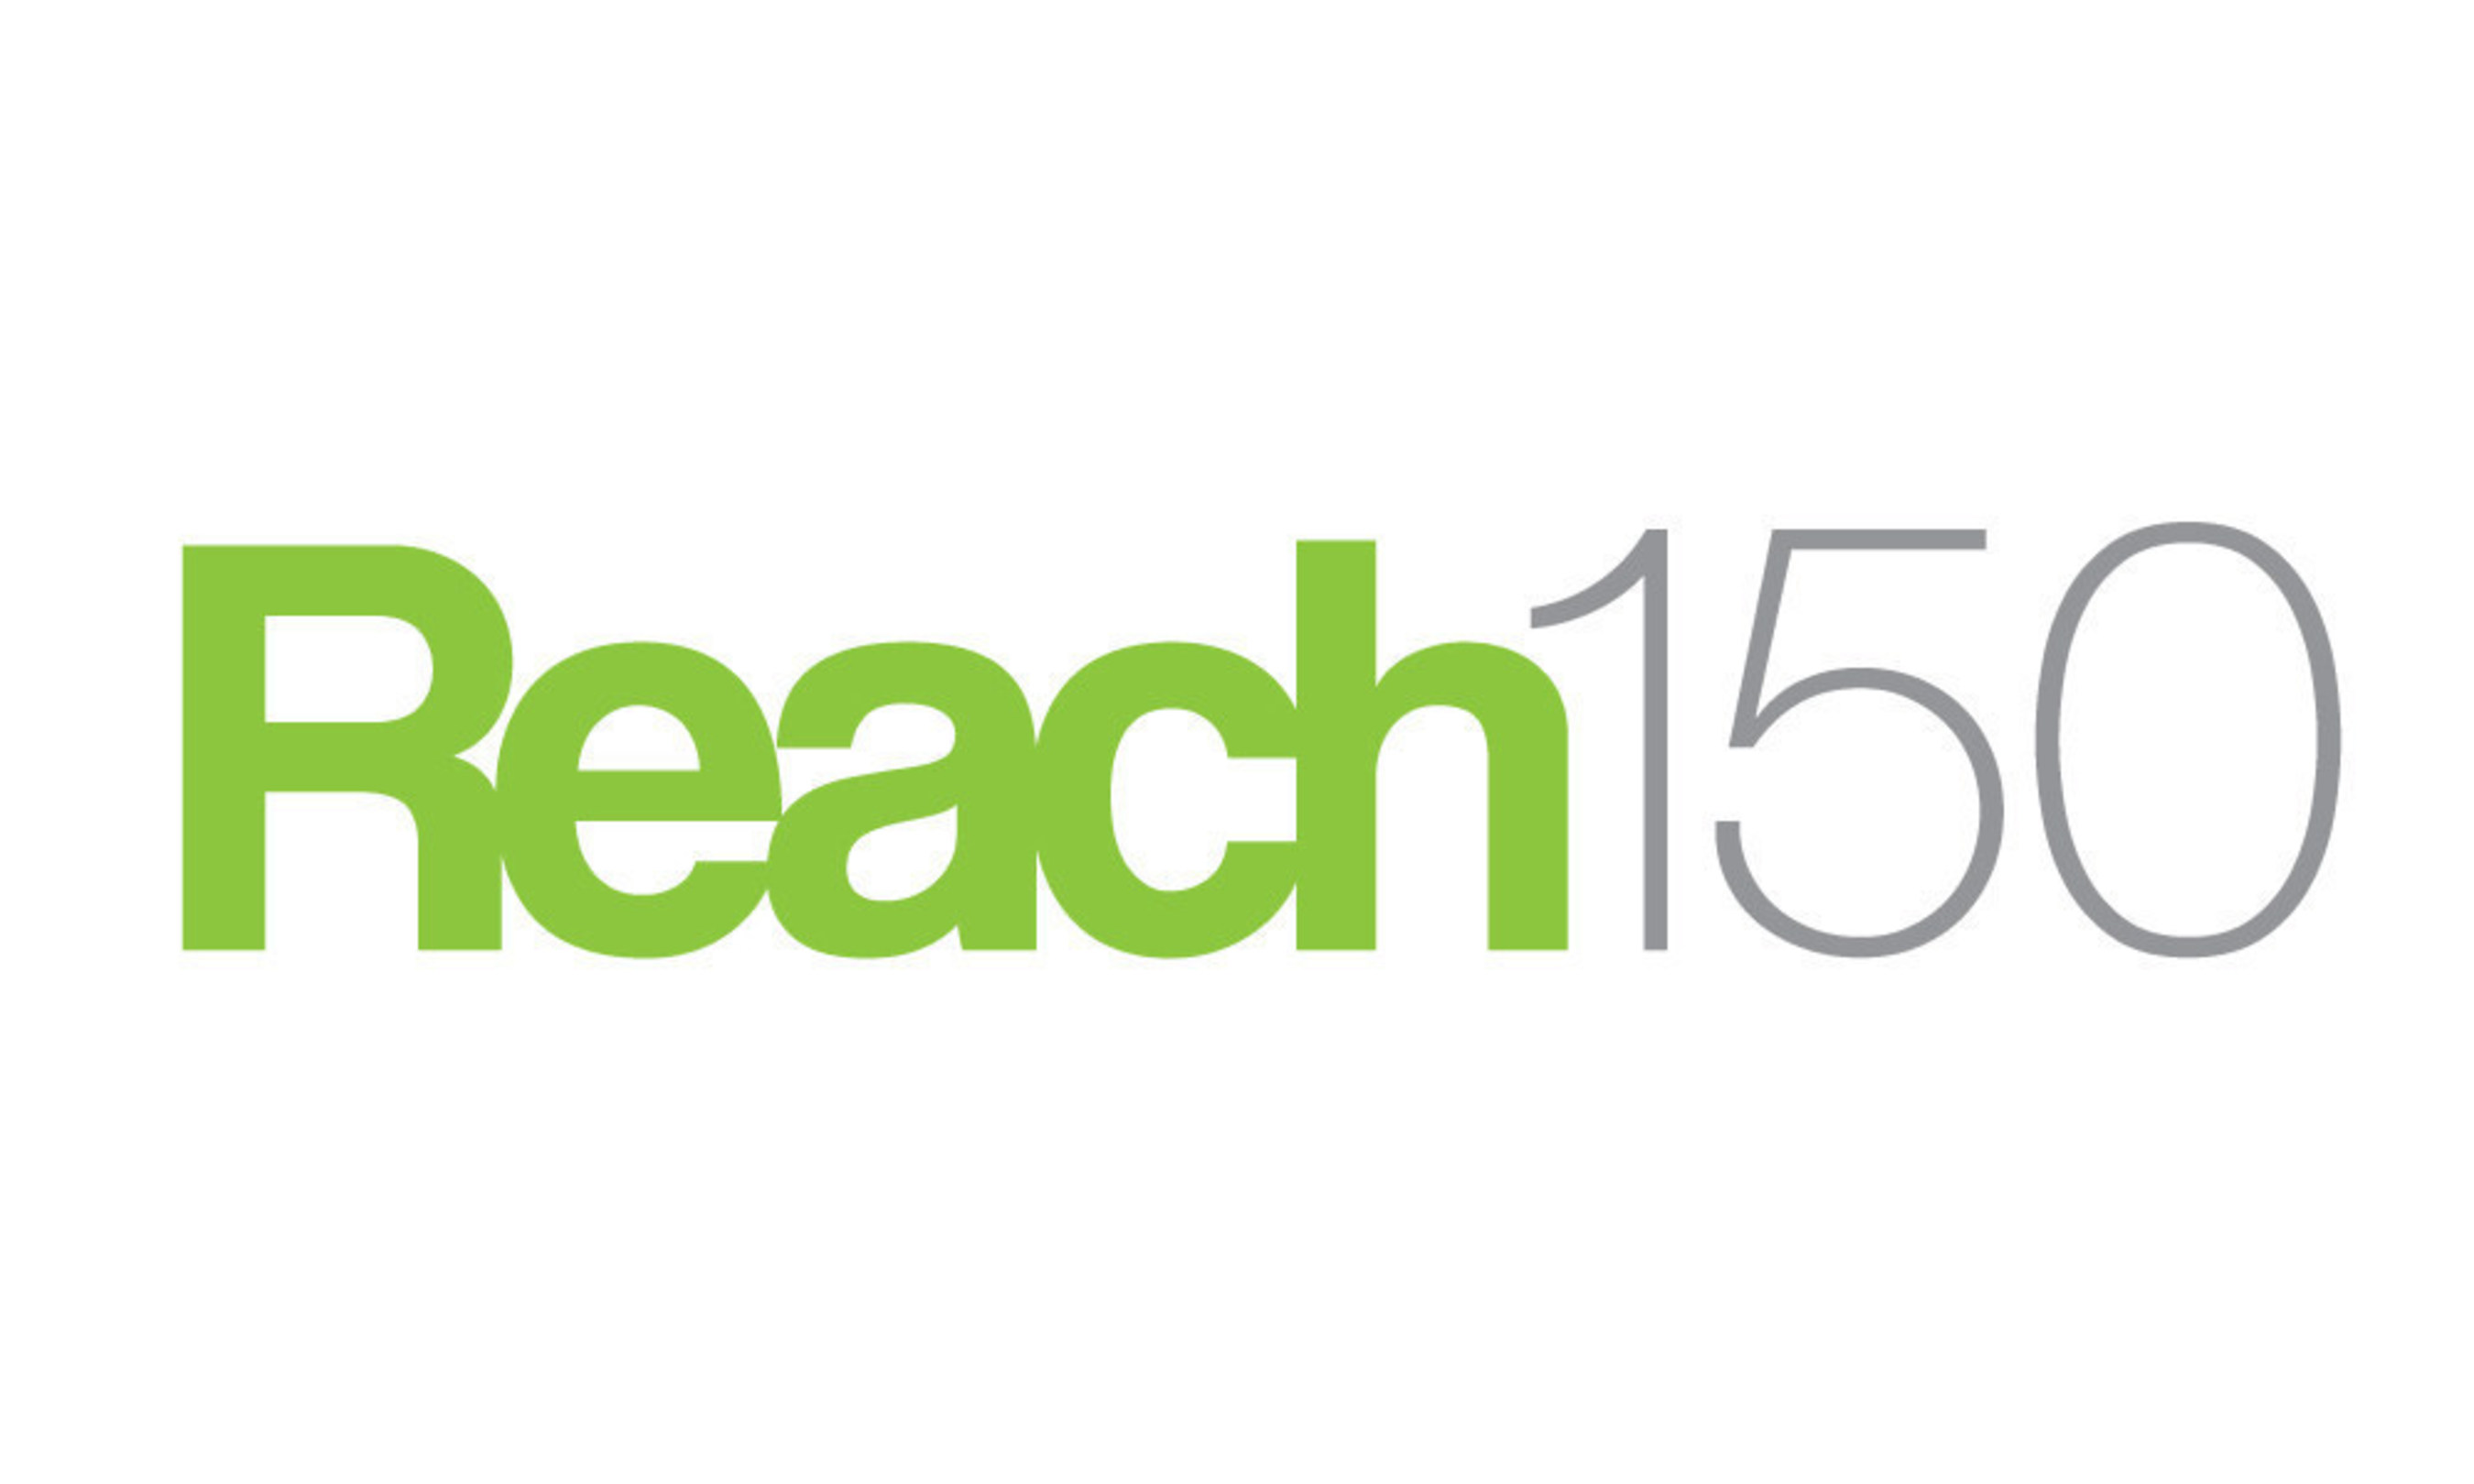 New Reach150 Mobile App Gives Business Professionals The Ability To Easily Create and Share Custom Content With Prospects While On The Go